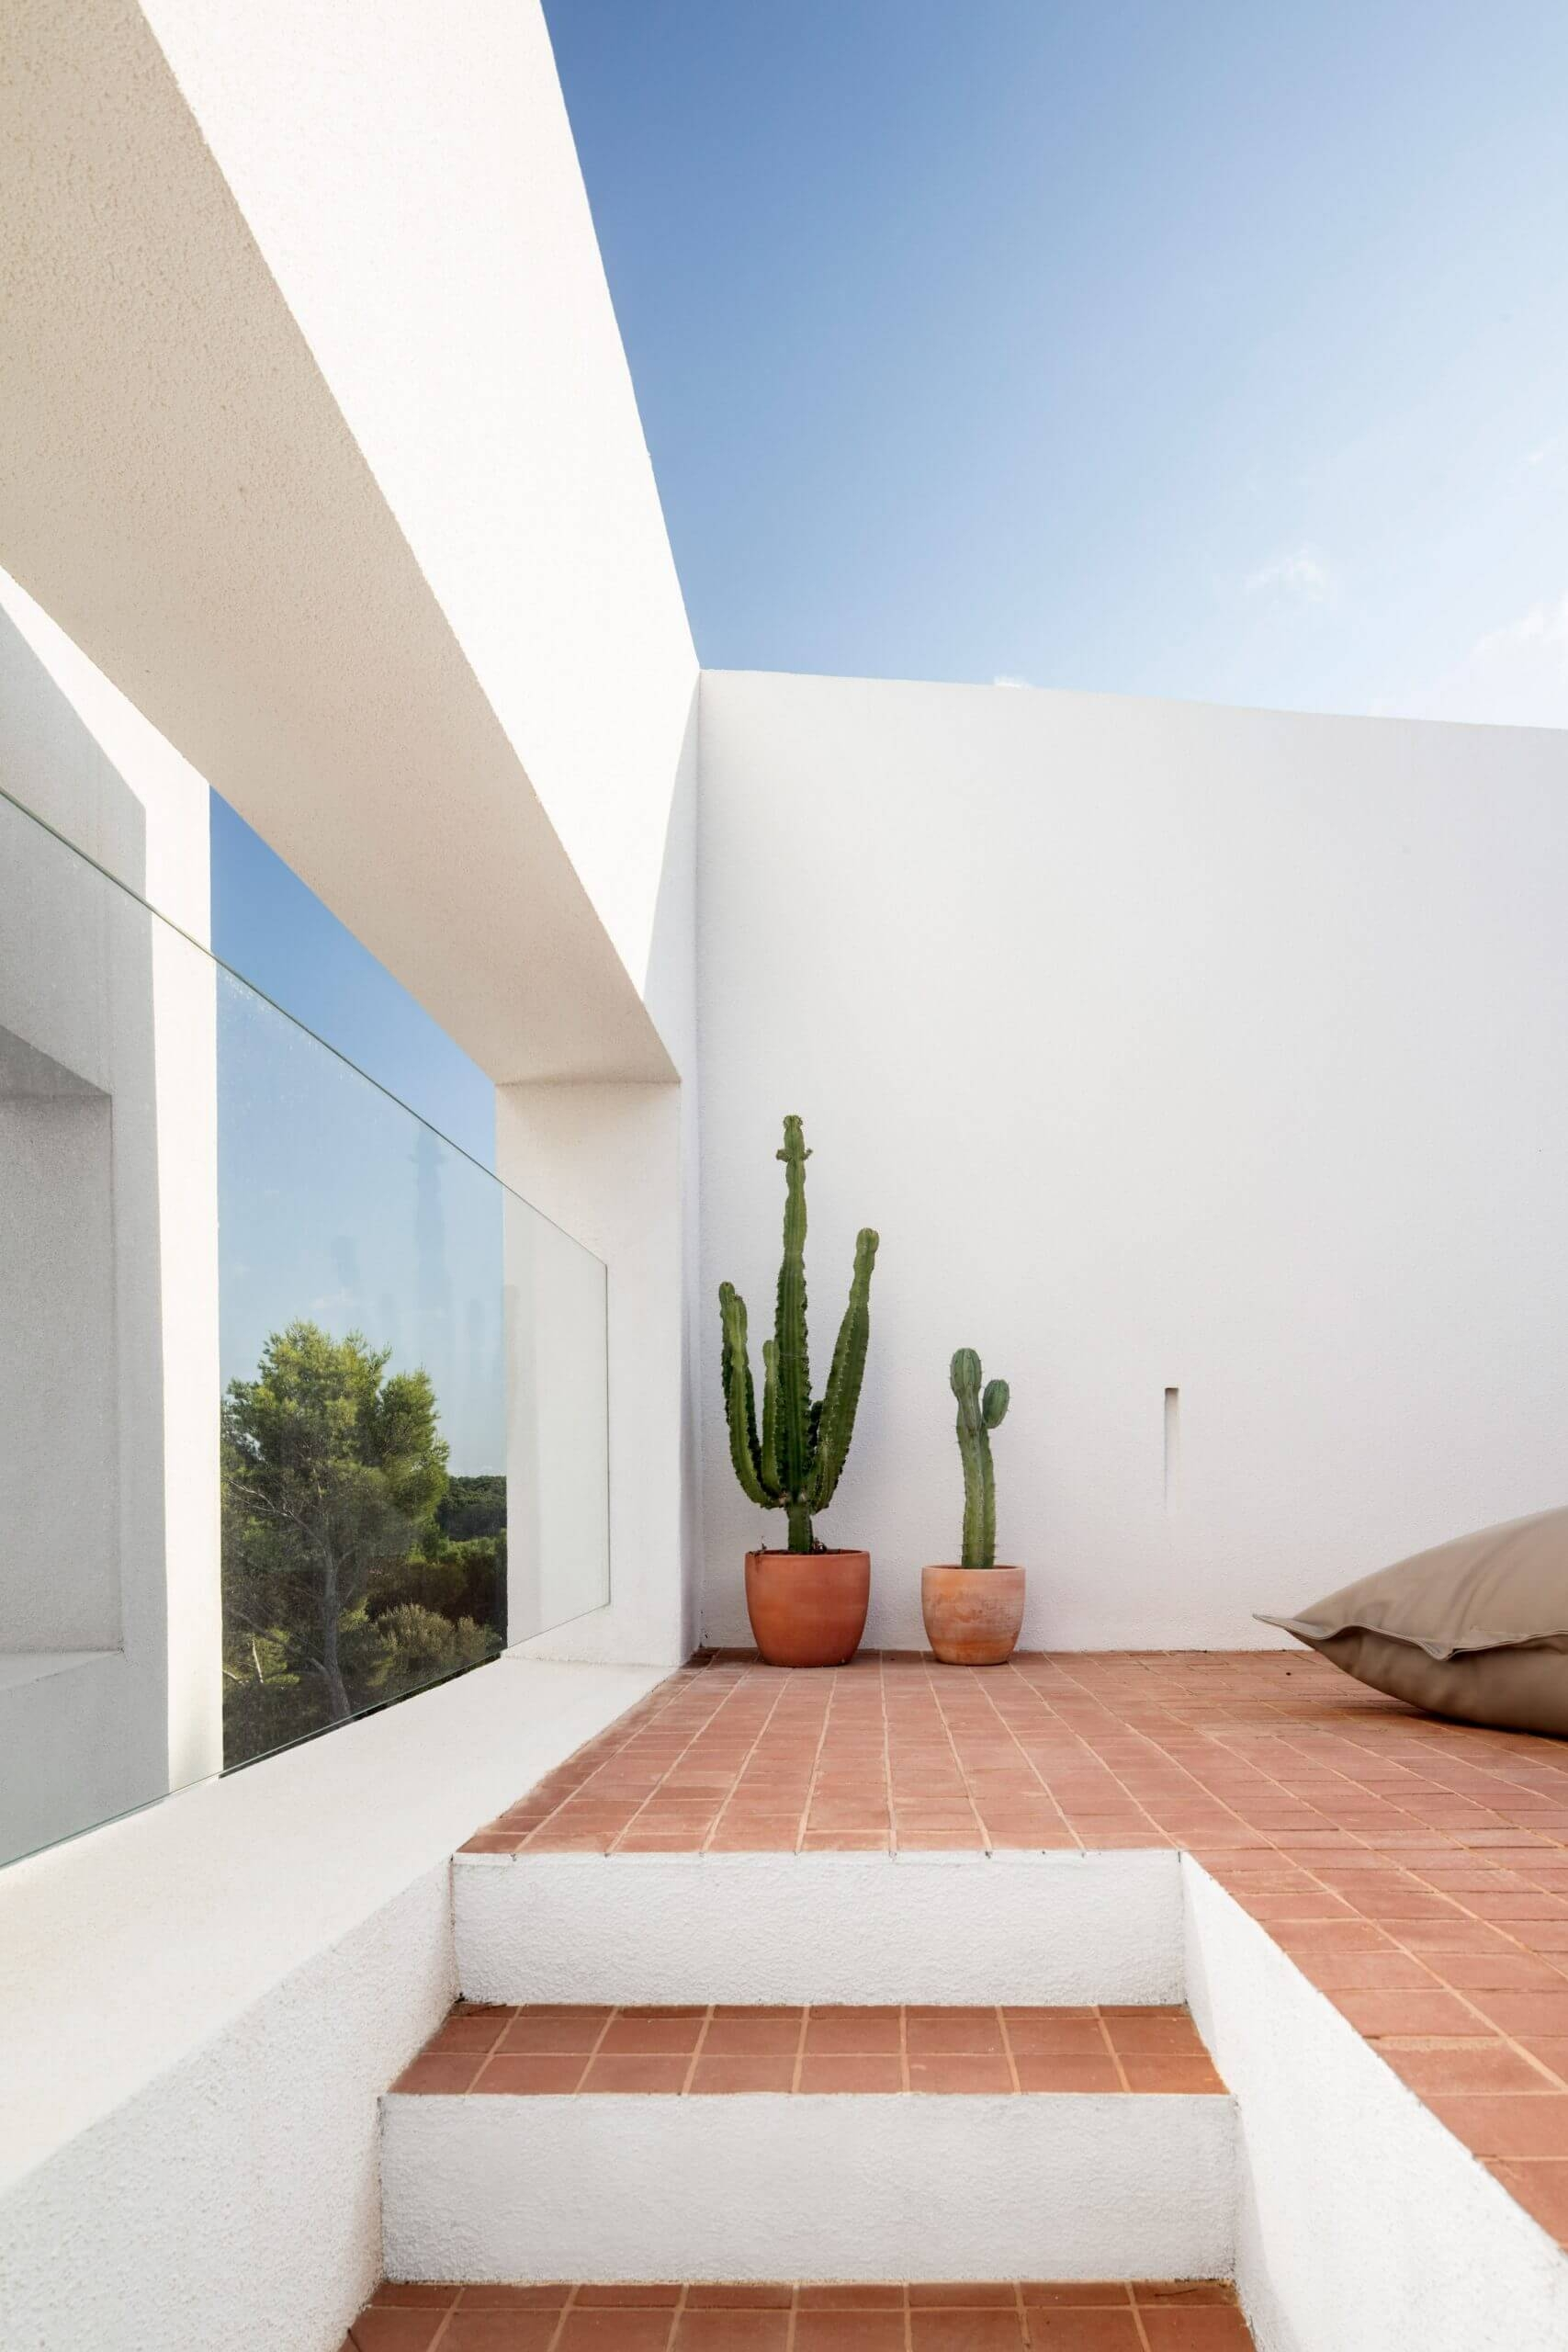 nomo studio curved house menorca spain architecture residential dezeen 2364 col 13 scaled 1